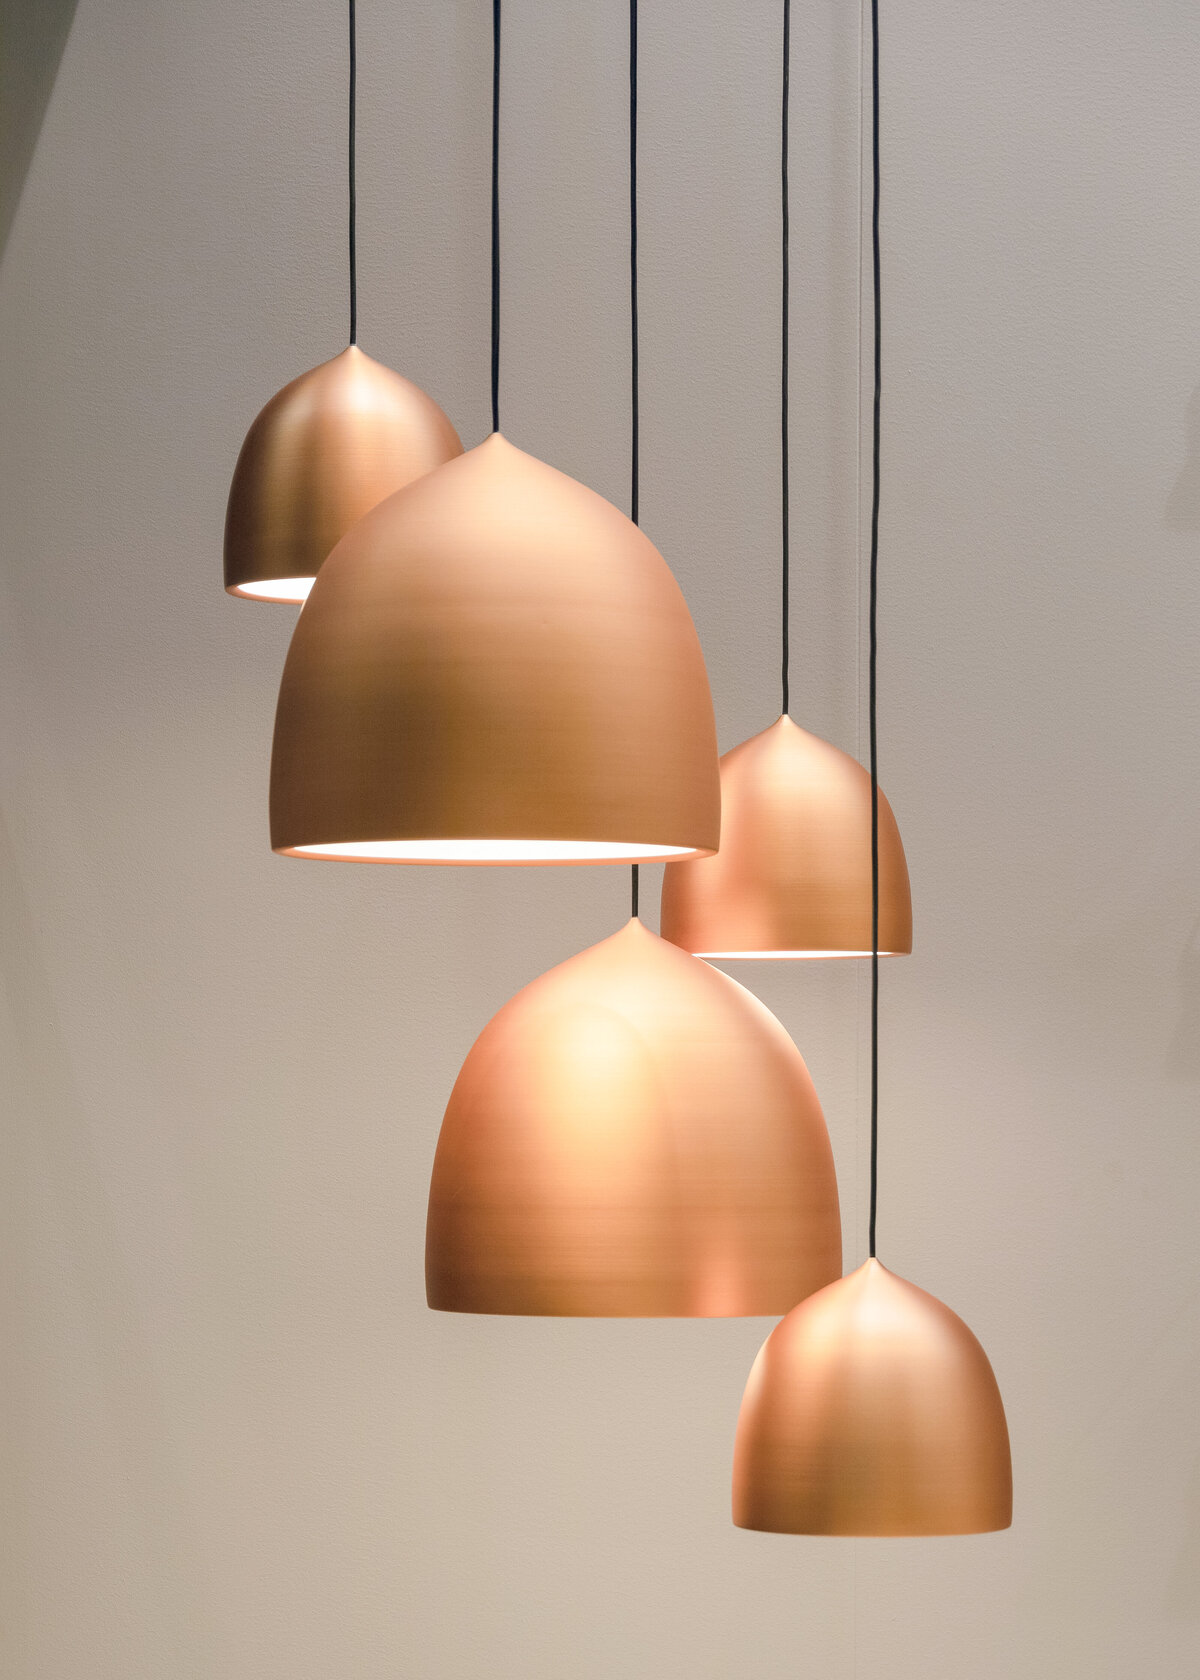 An assortment of copper gold pendant lights hang in a collection as interior decor.